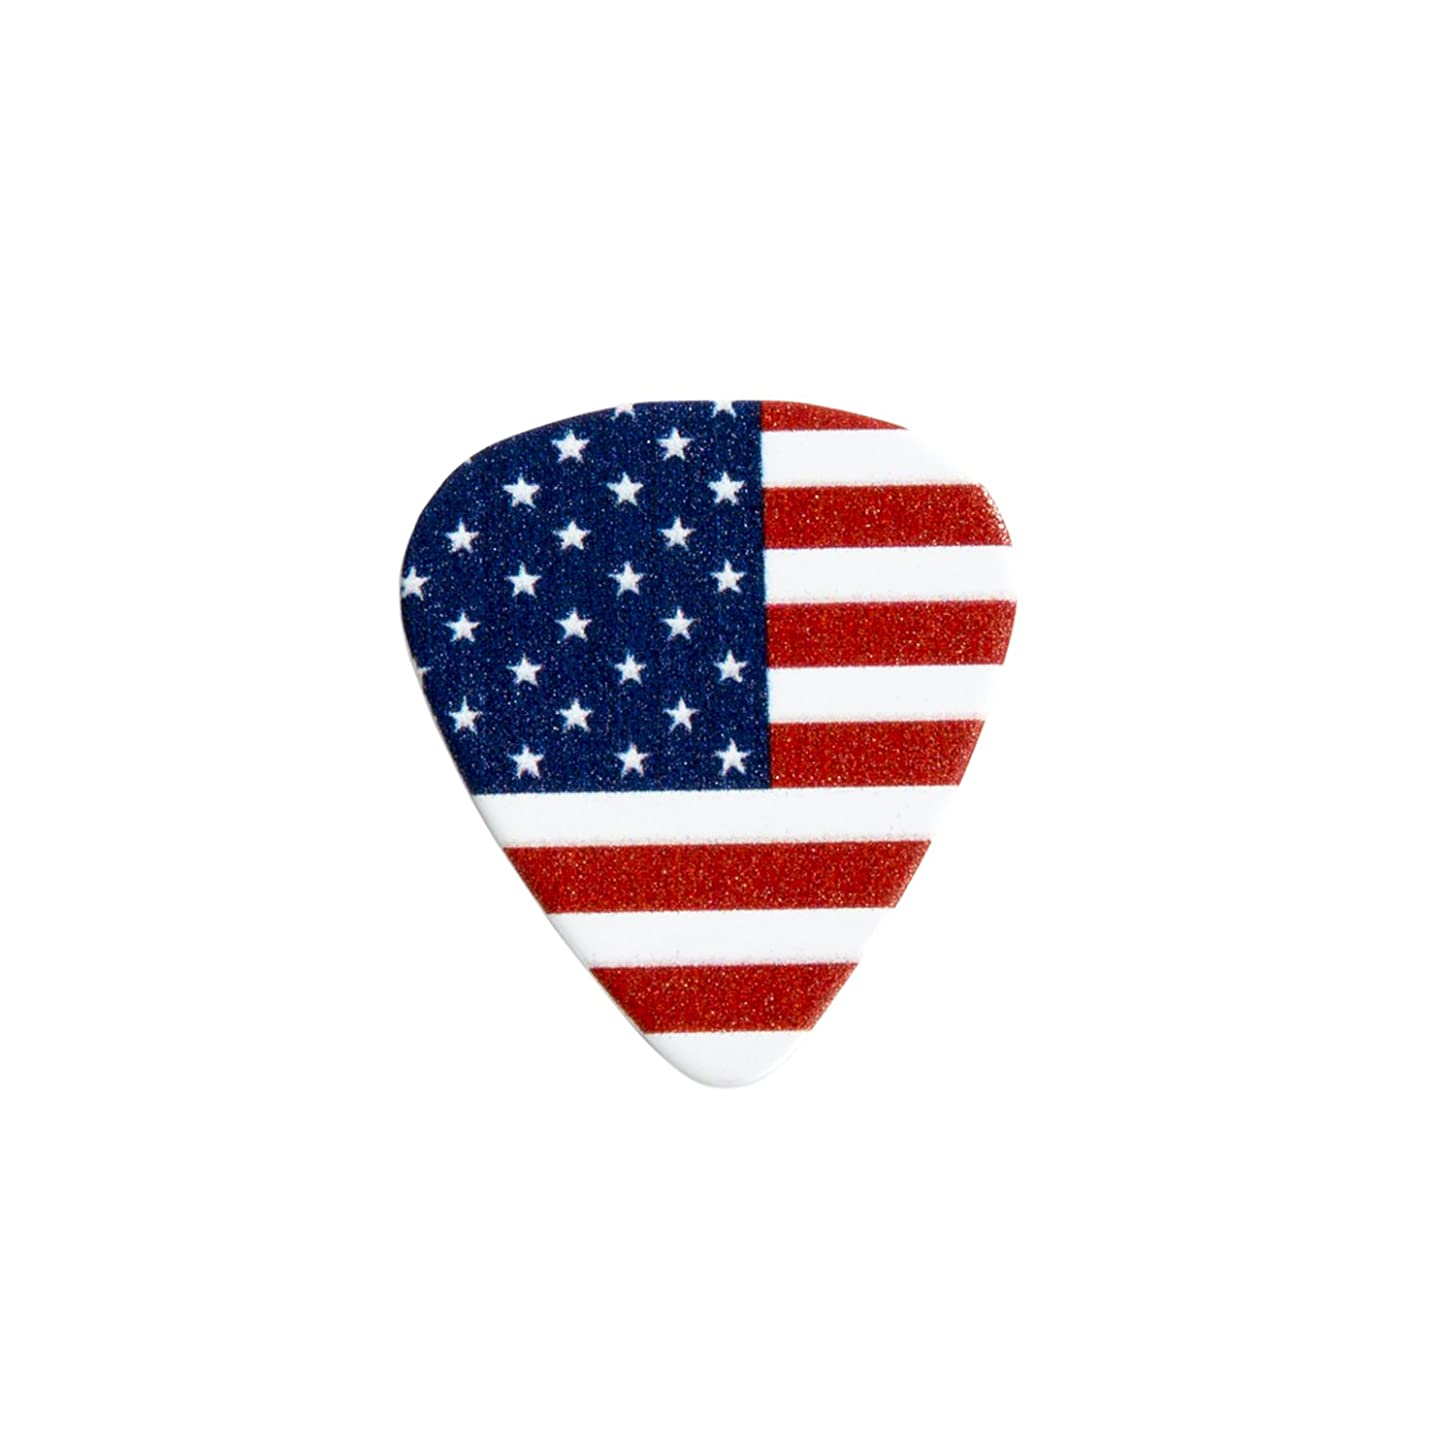 D'Andrea Cool Plecs Guitar Picks 12 Pack (Flag, Medium)